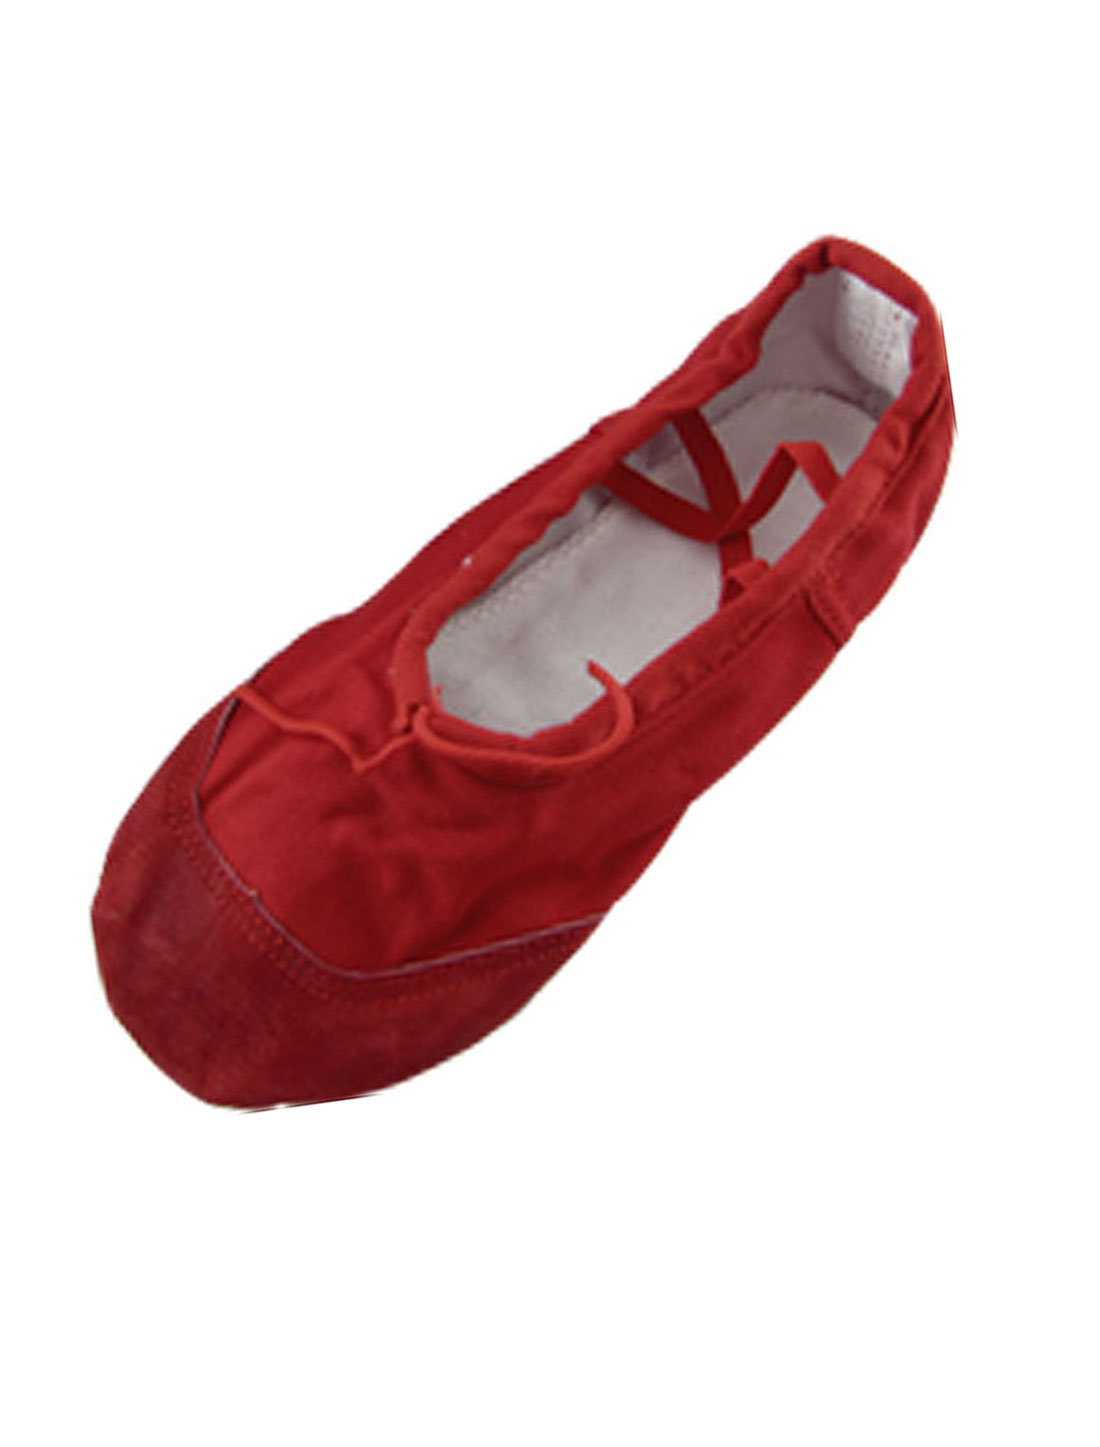 Girls Red Soft Canvas Elastic Band Ballet Dancing Shoes US Size 1